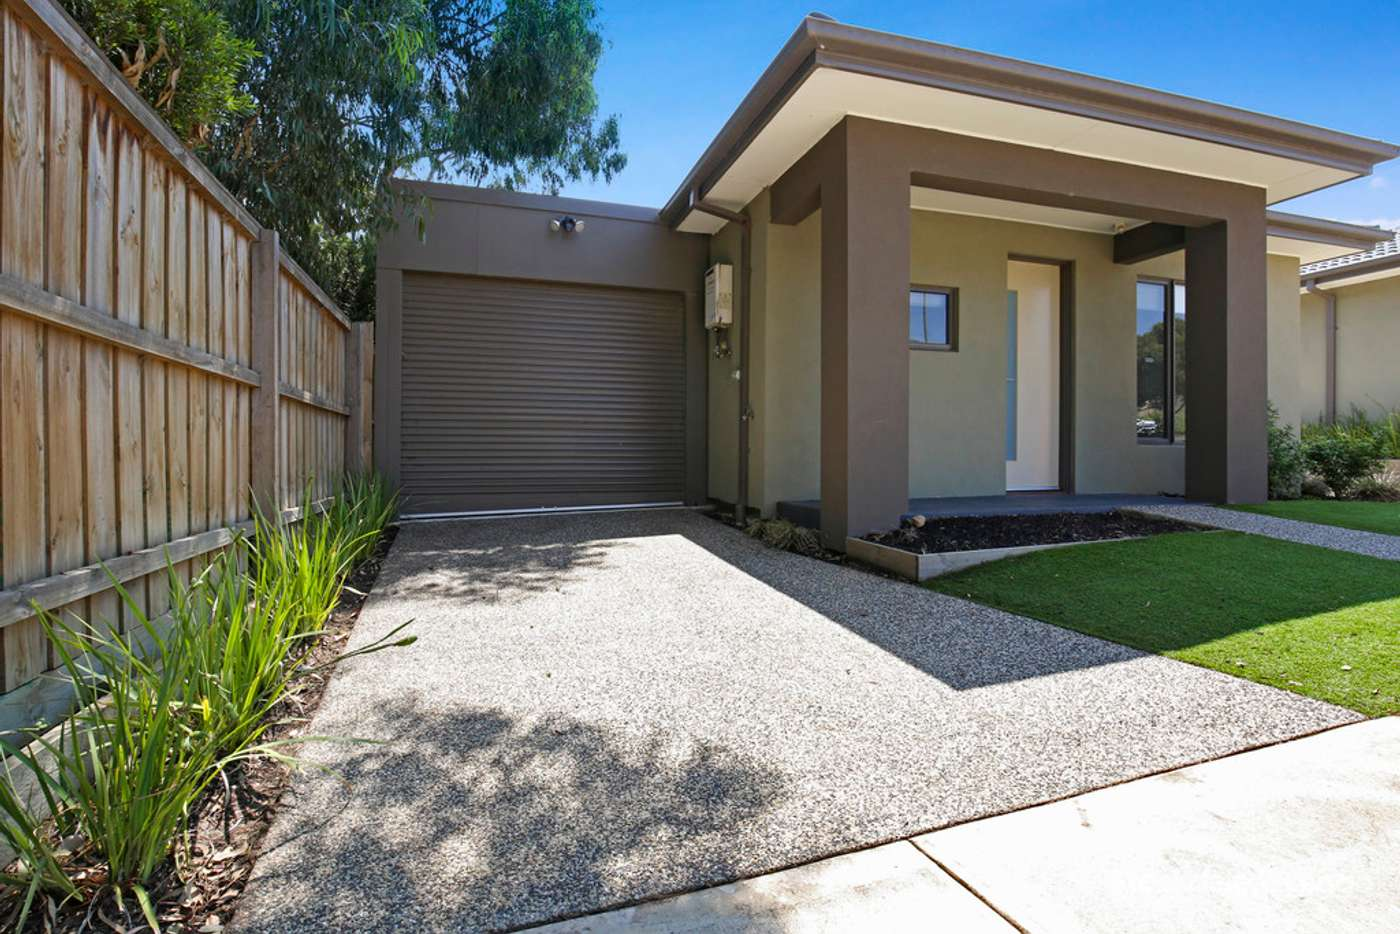 Main view of Homely unit listing, 1/44-46 Yellow Brick Road, Doreen VIC 3754